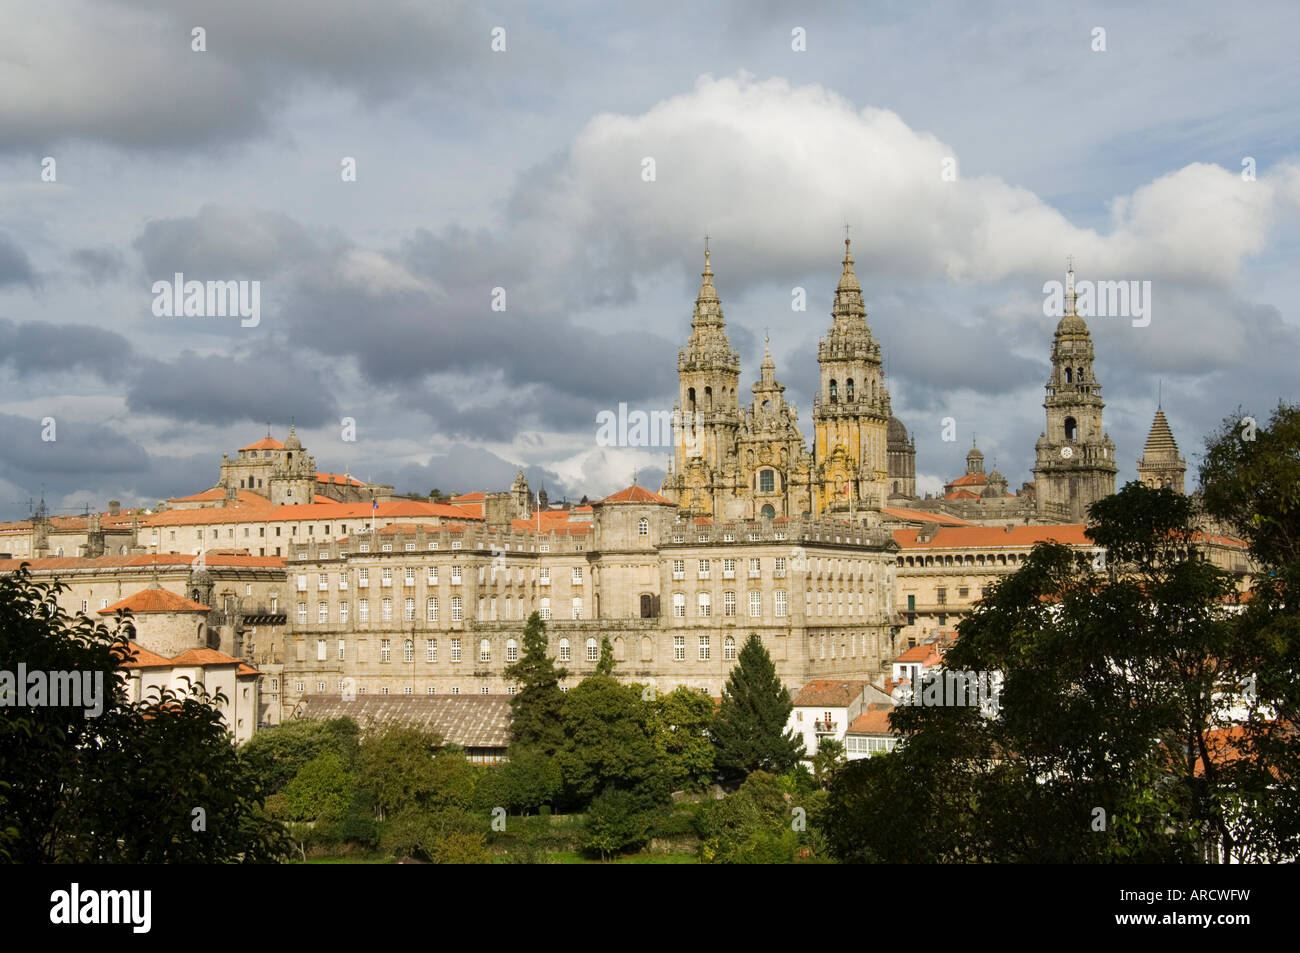 Santiago Cathedral with the Palace of Raxoi in foreground, Santiago de Compostela, Galicia, Spain, Europe - Stock Image